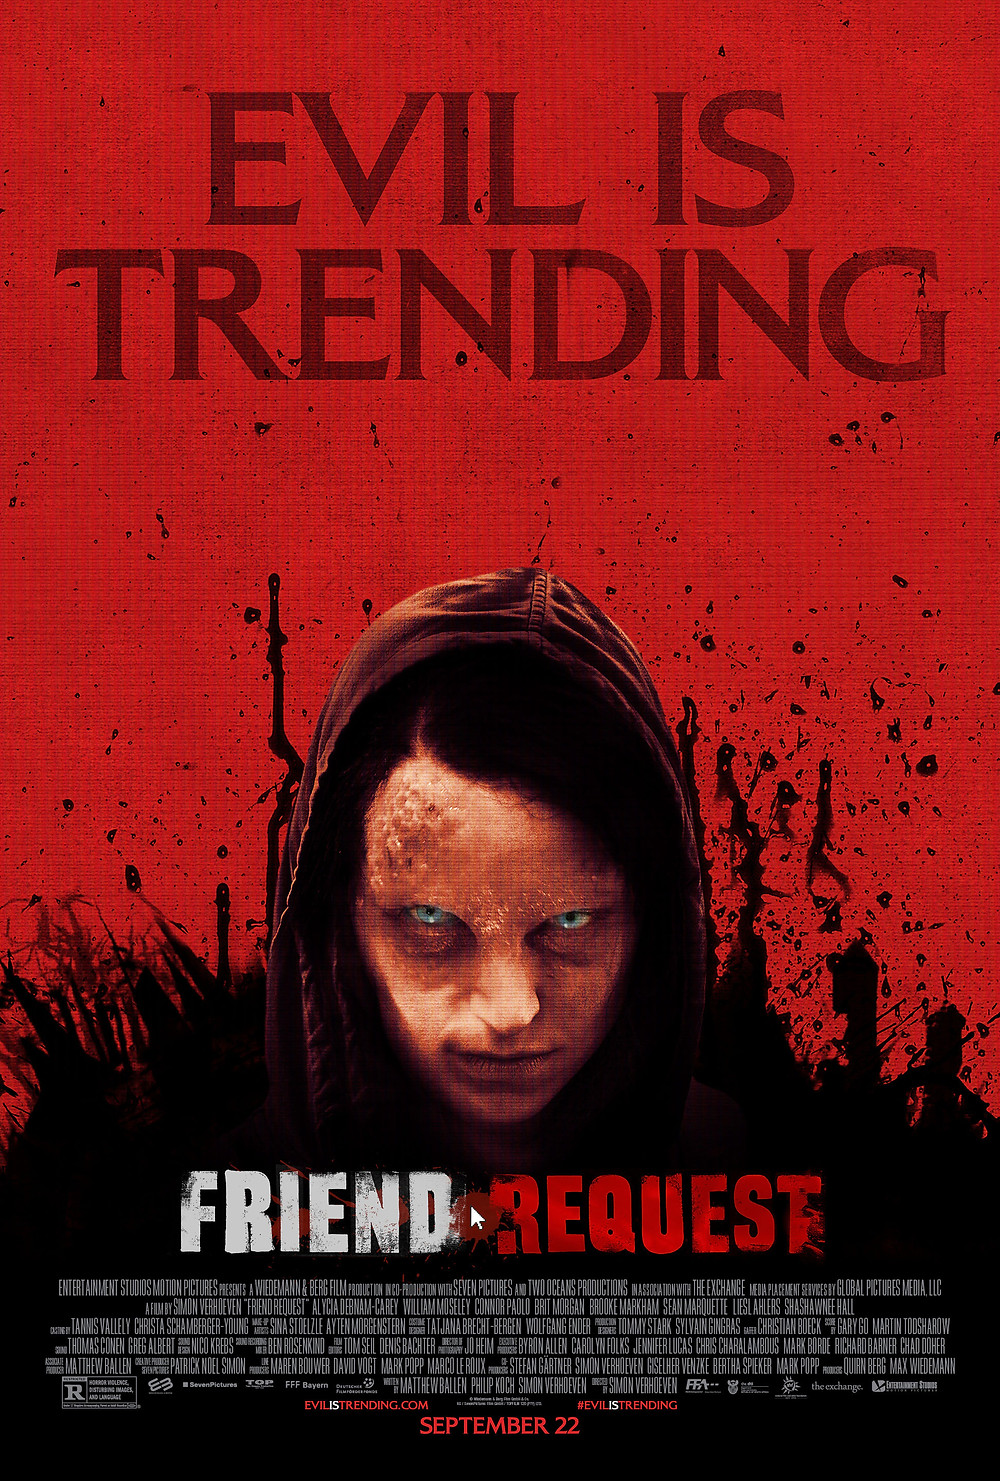 FRIEND REQUEST AMC Rosedale Promo